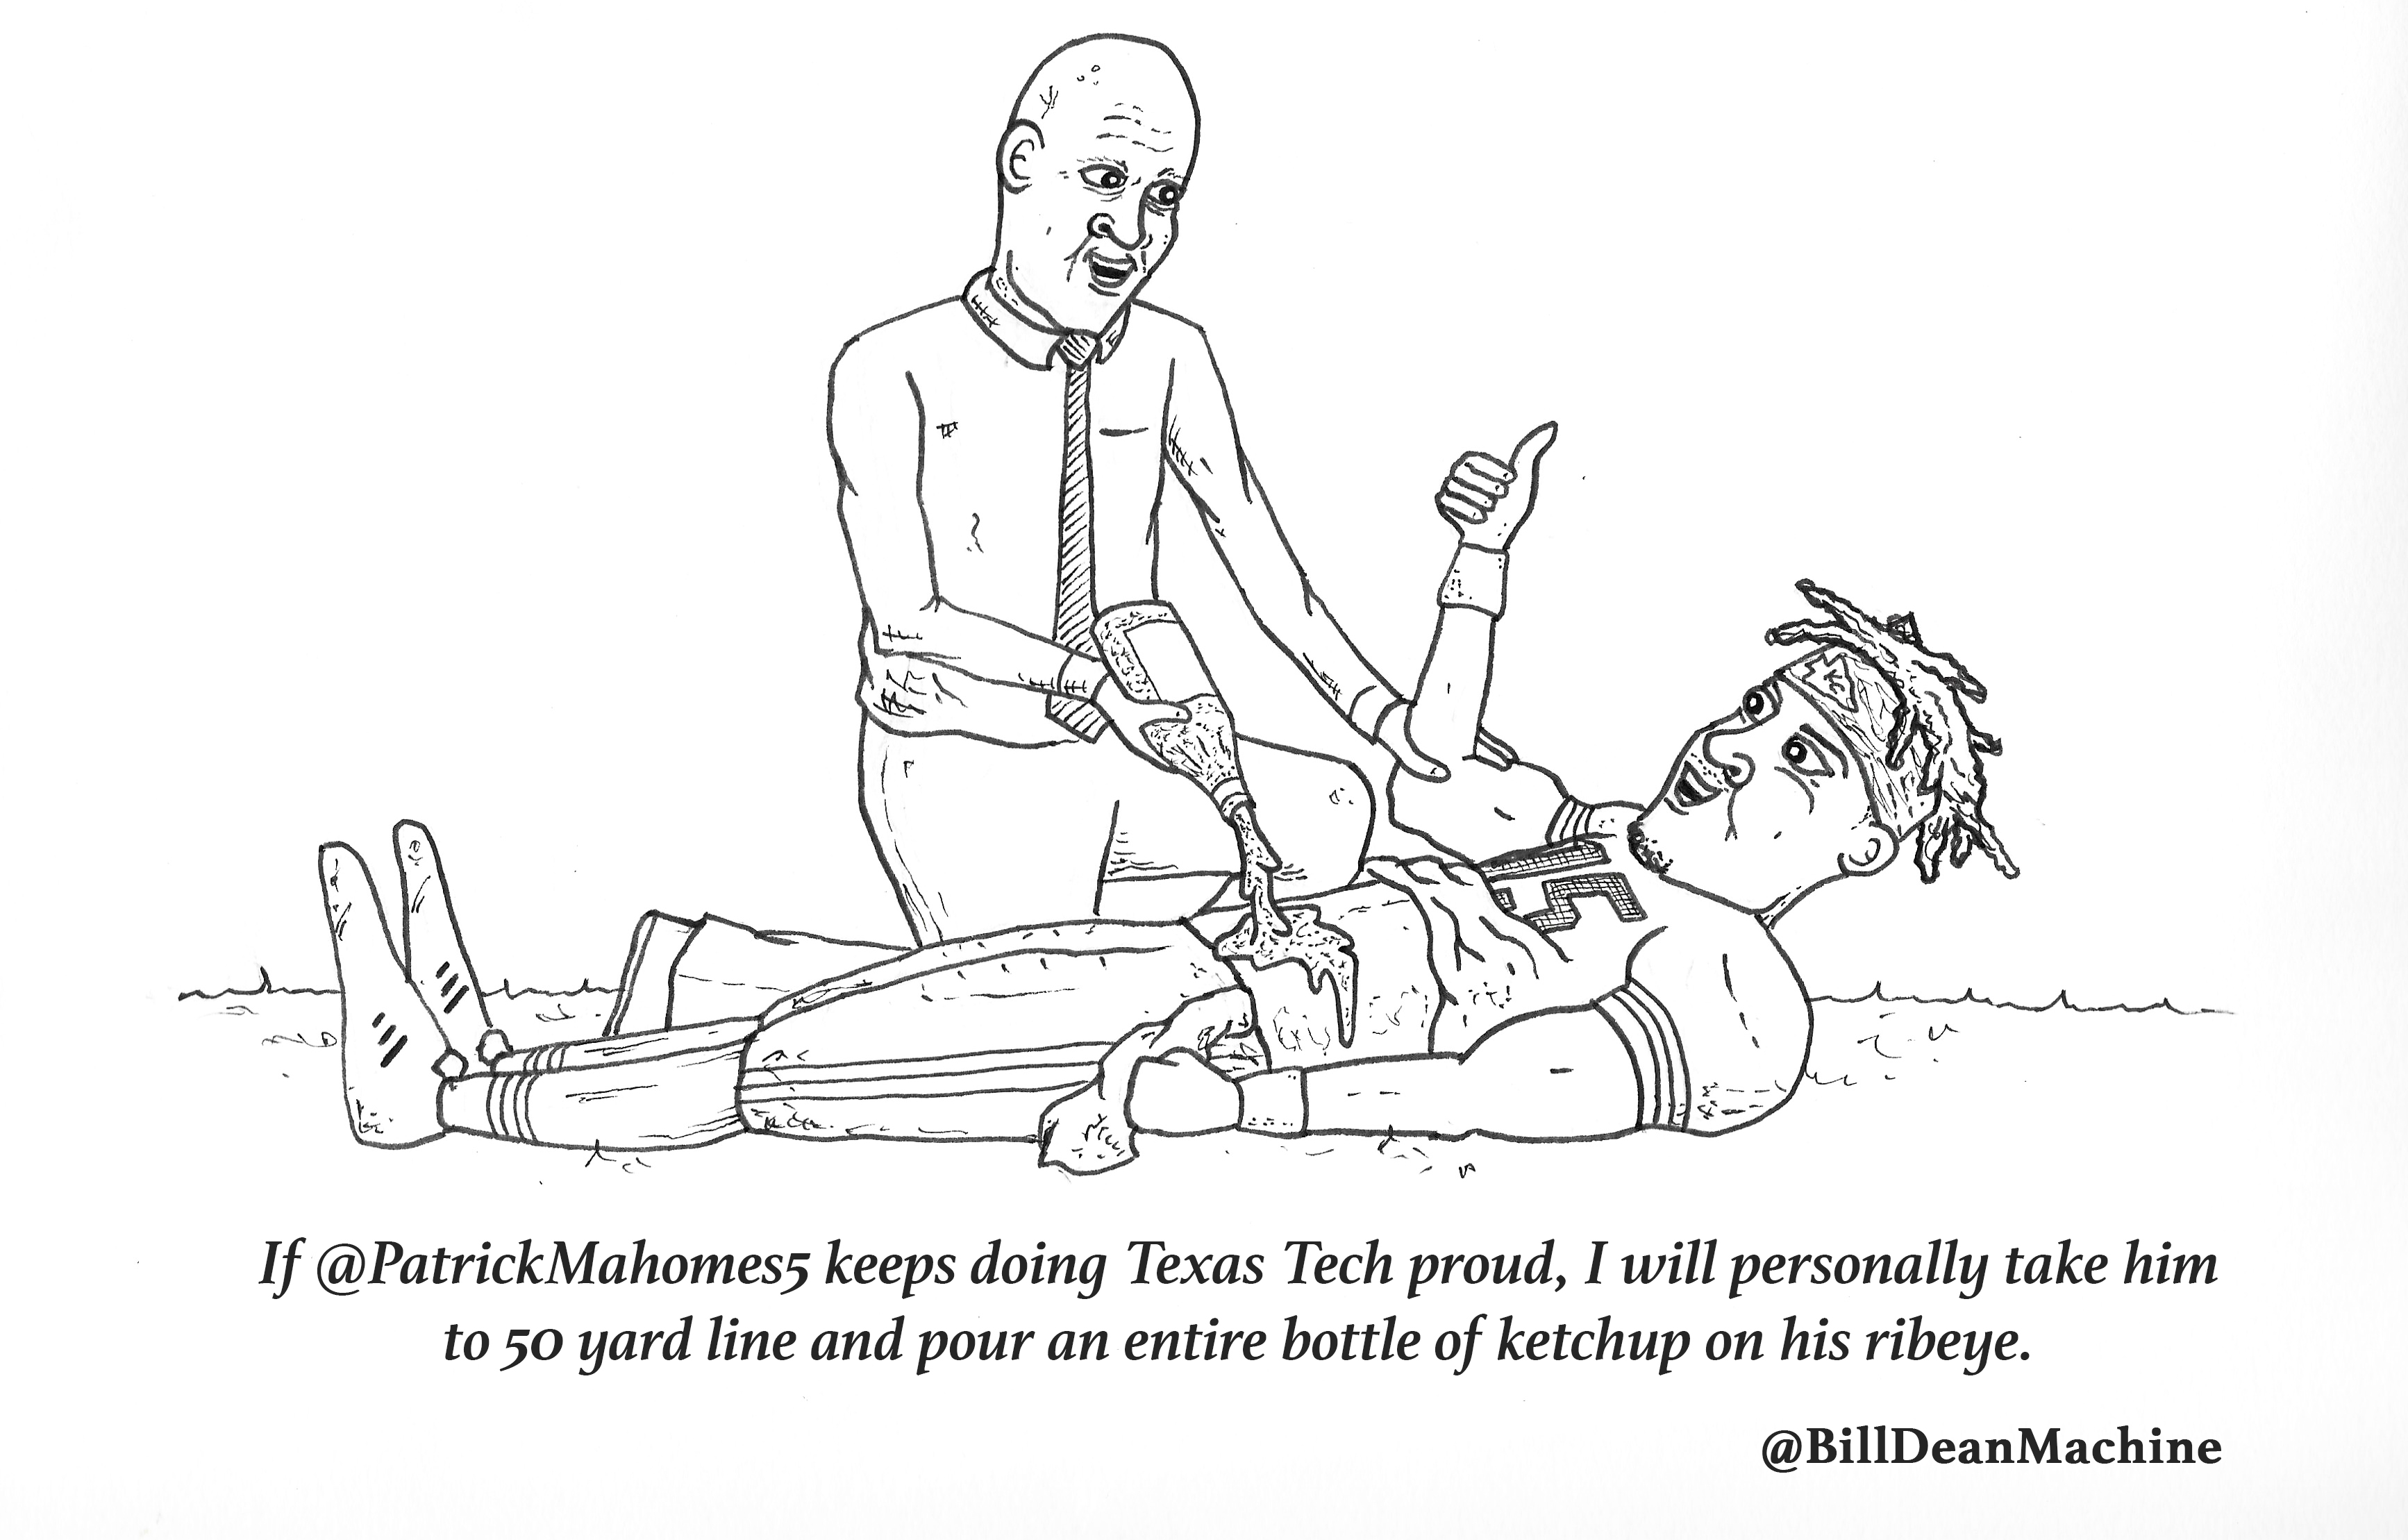 Tweets Illustrated - @BillDeanMachine Pours an Entire Bottle of Ketchup on Patrick Mahomes